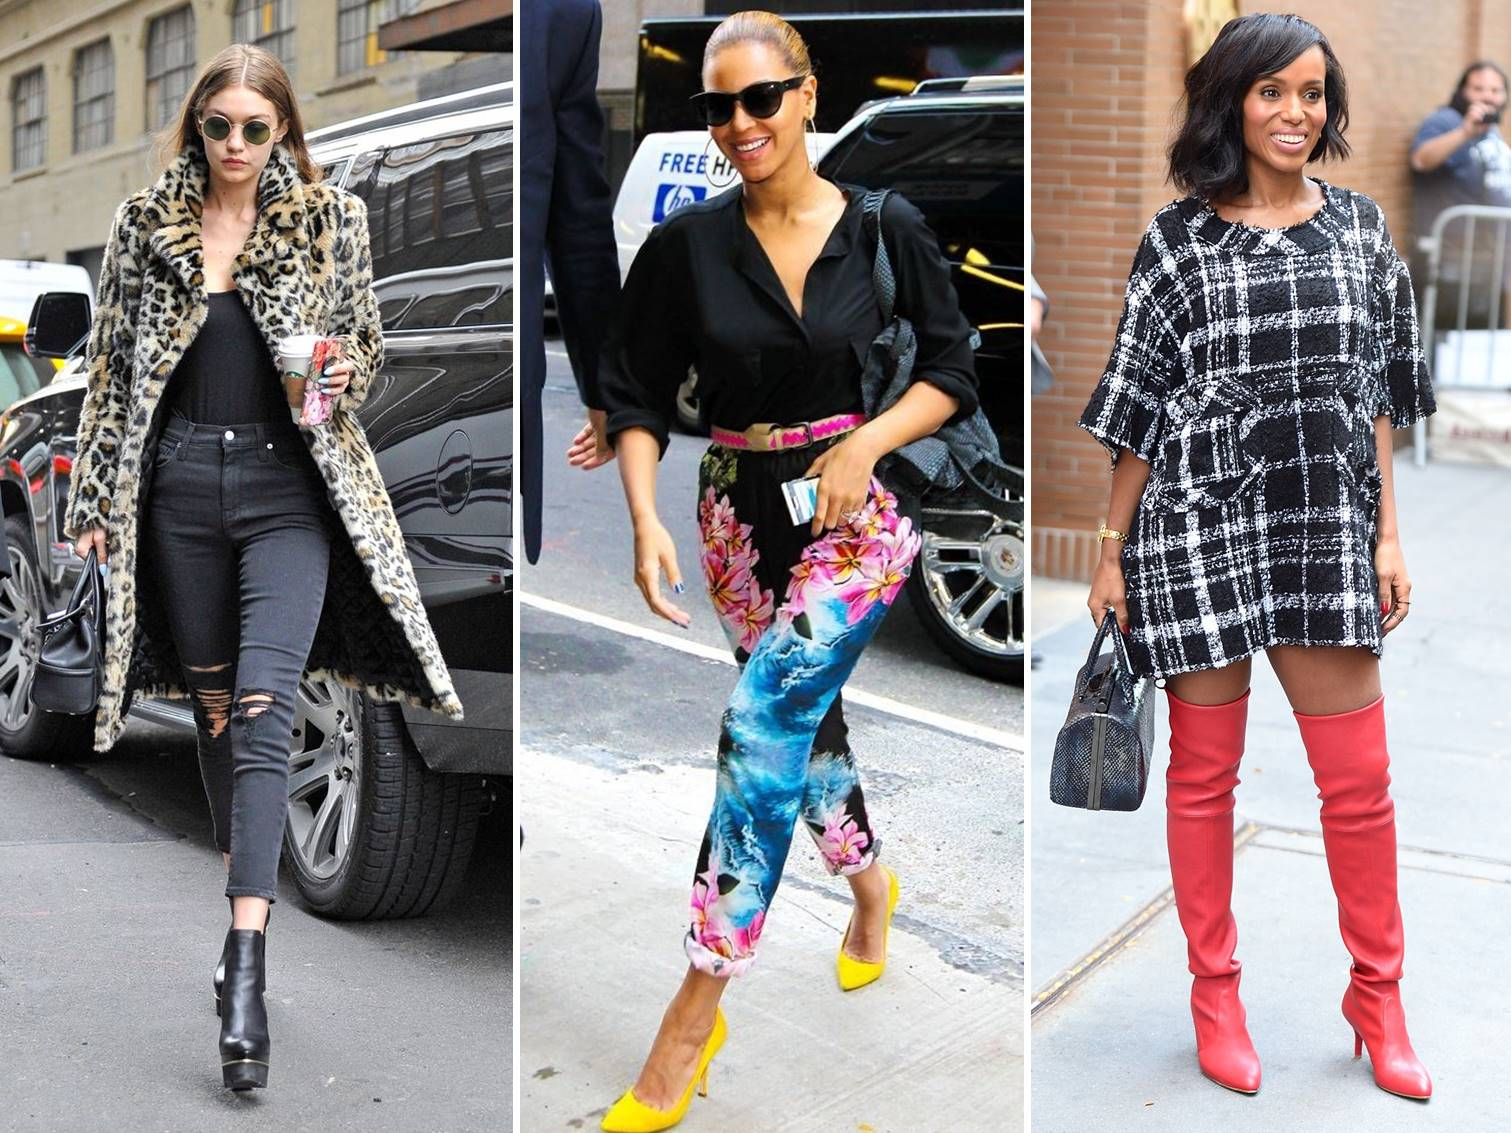 I want to share my favorite celebrity street fashion shots today to help you get ideas on how to bring out your casual style.